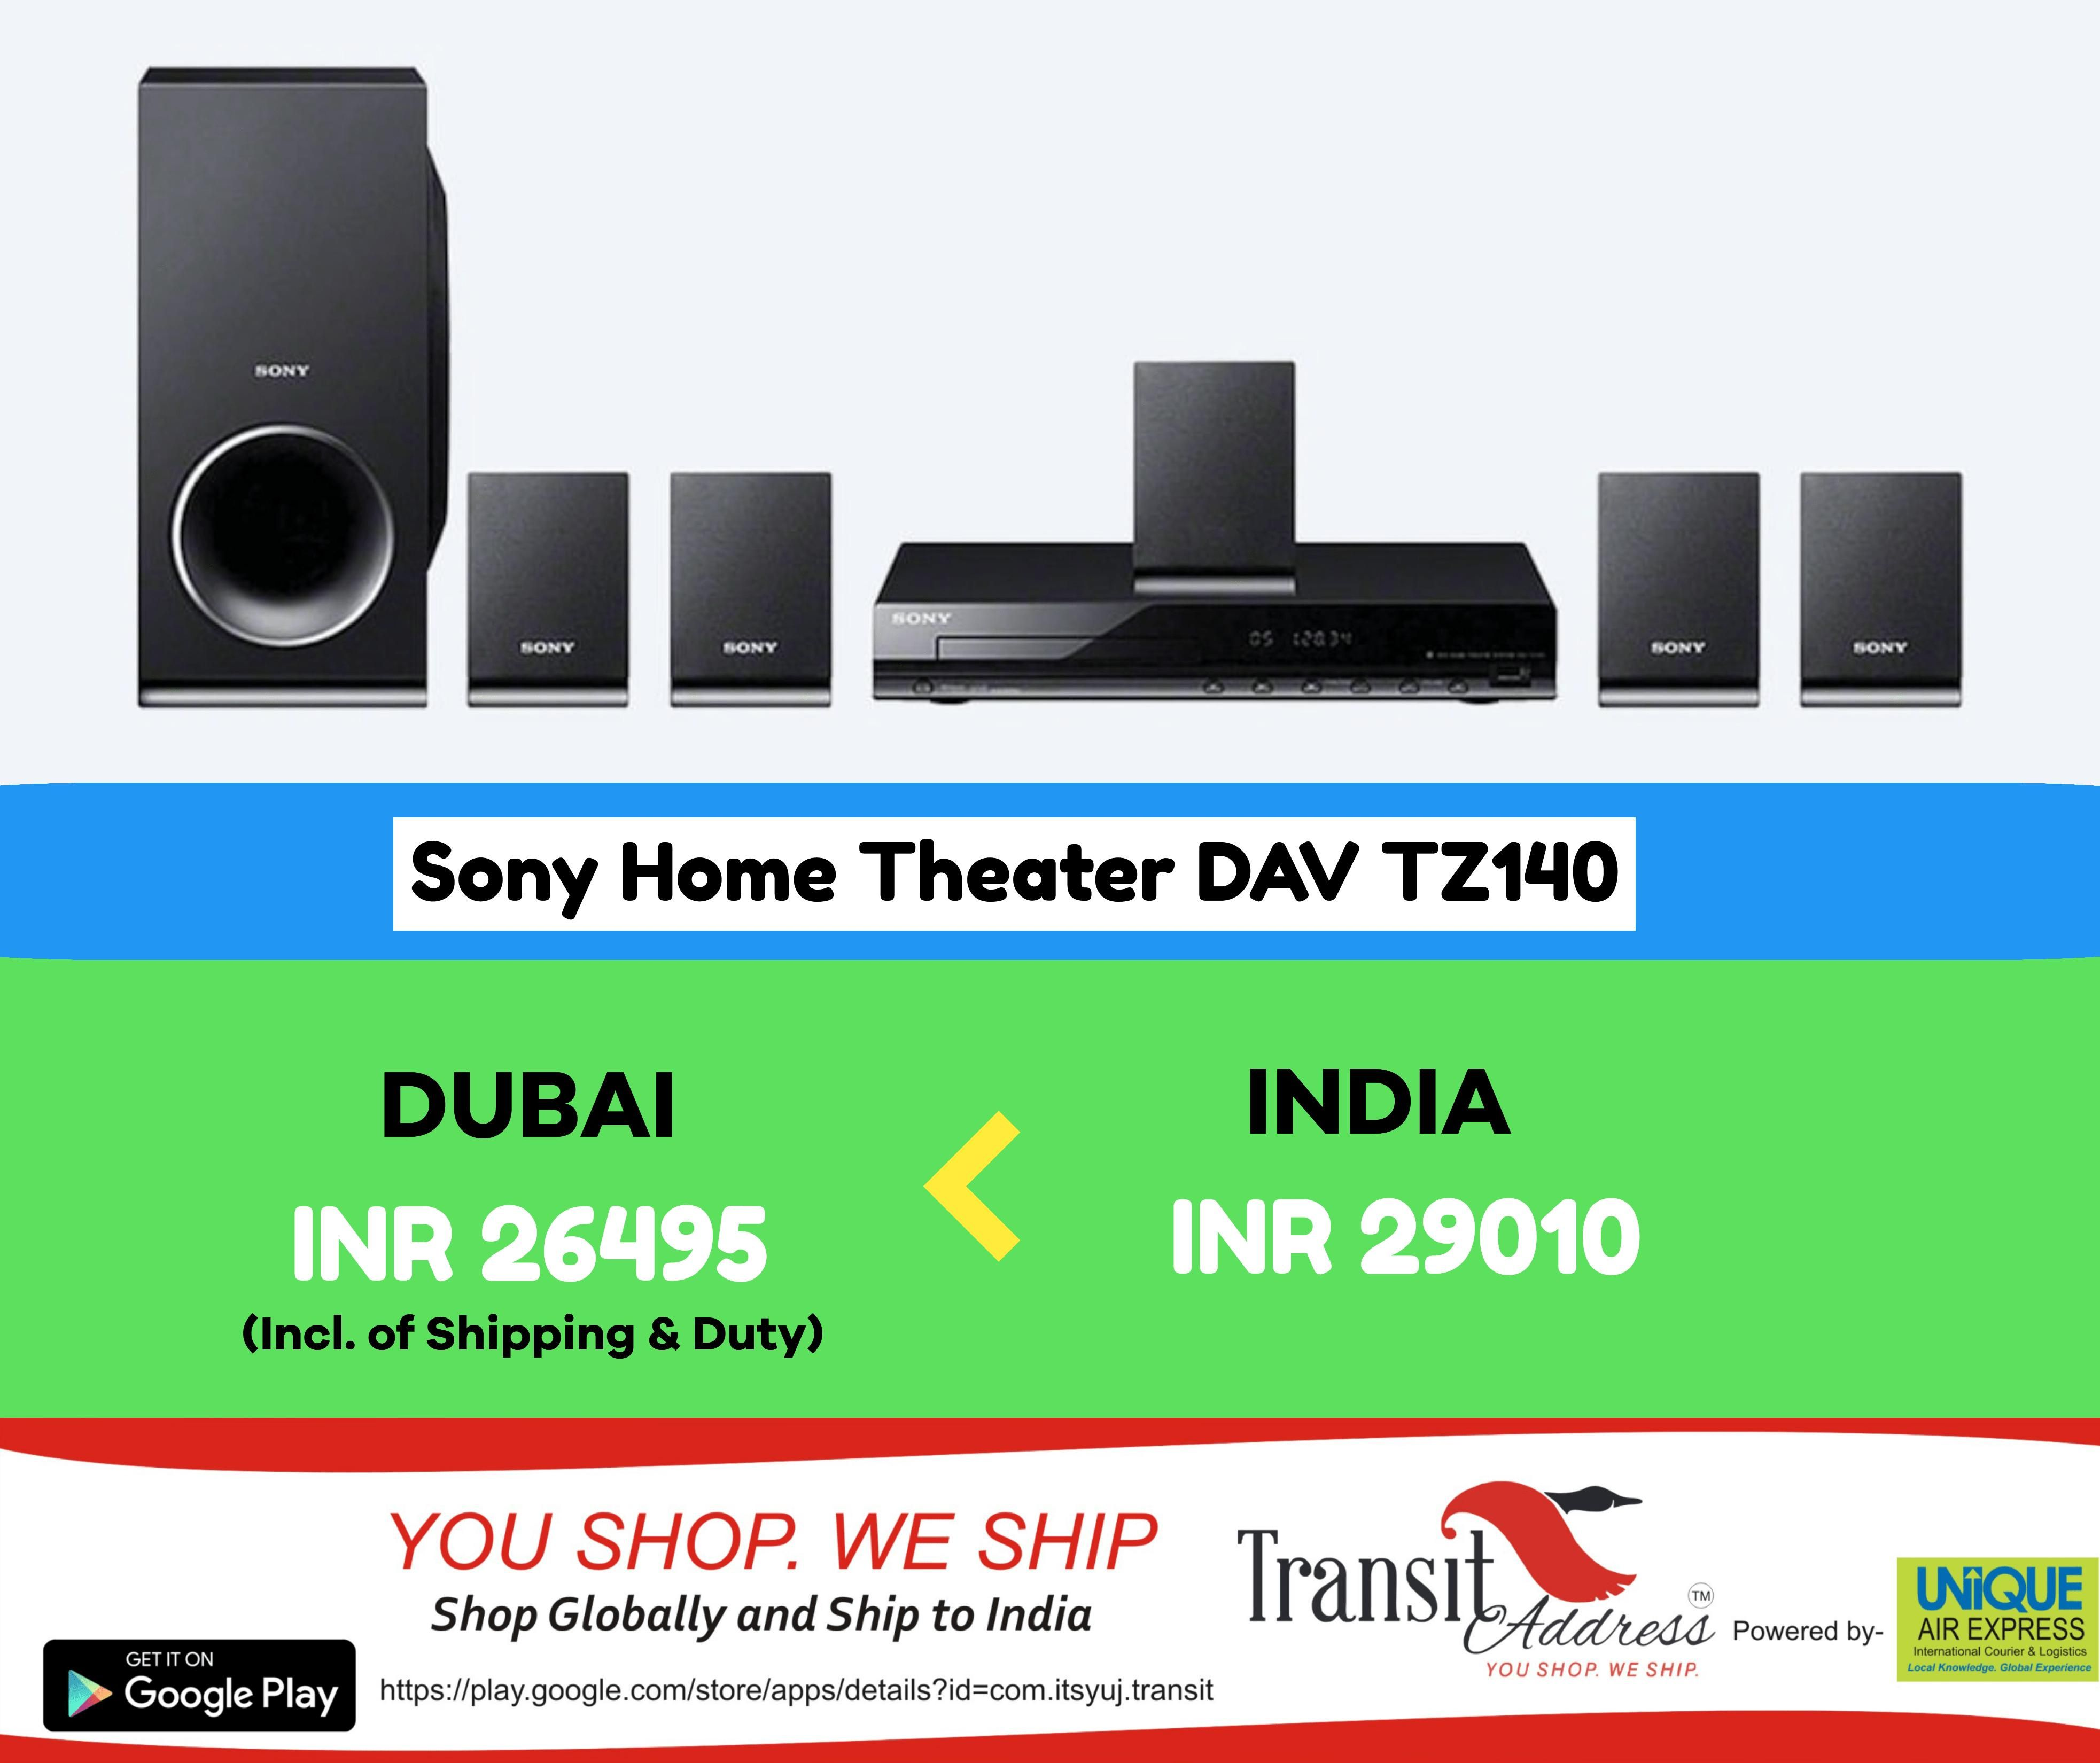 Sony Home Theater DAV TZ140 | Shop from UAE ship to India